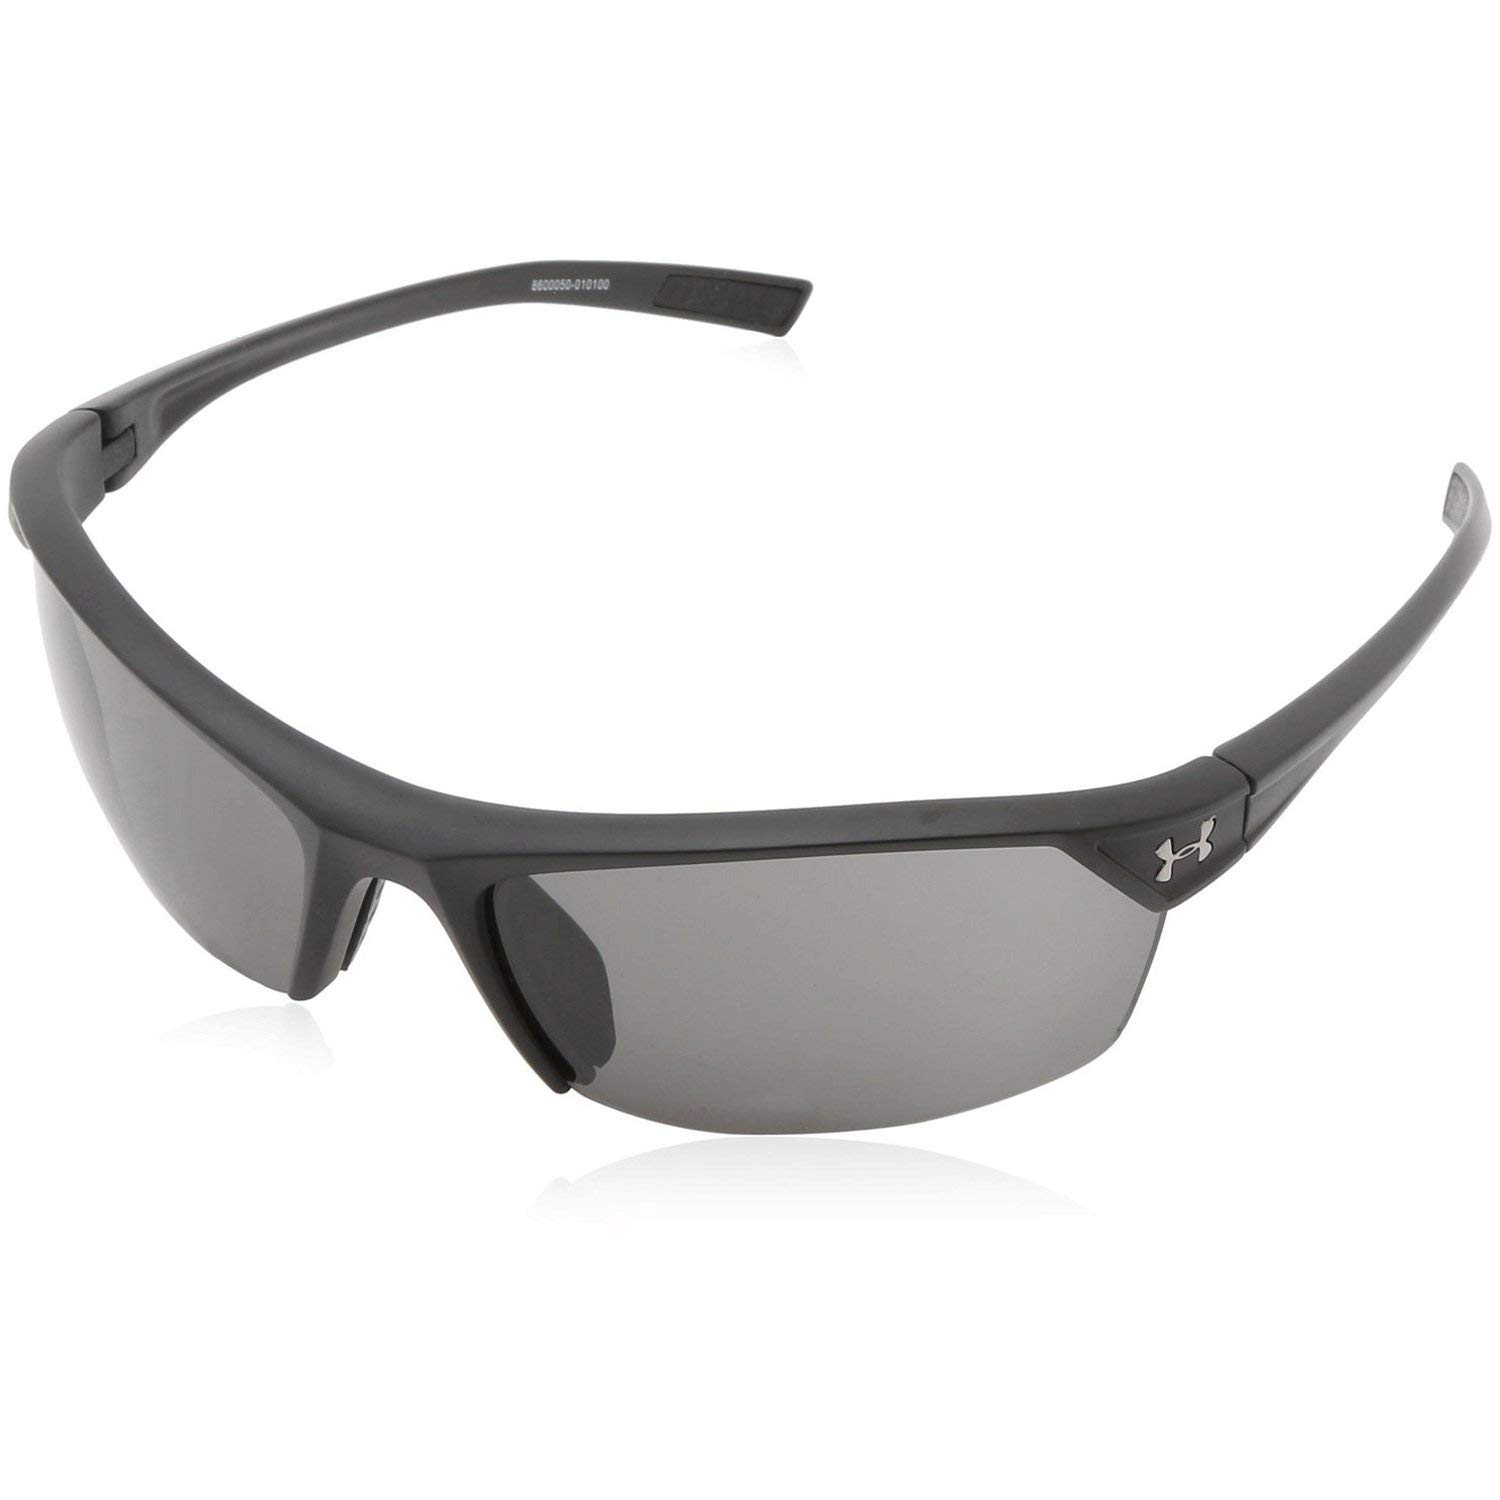 128ab6f108d5 Amazon.com: Under Armour Zone 2.0 Satin Black Frame, with Black Rubber and  Gray Lens: Clothing